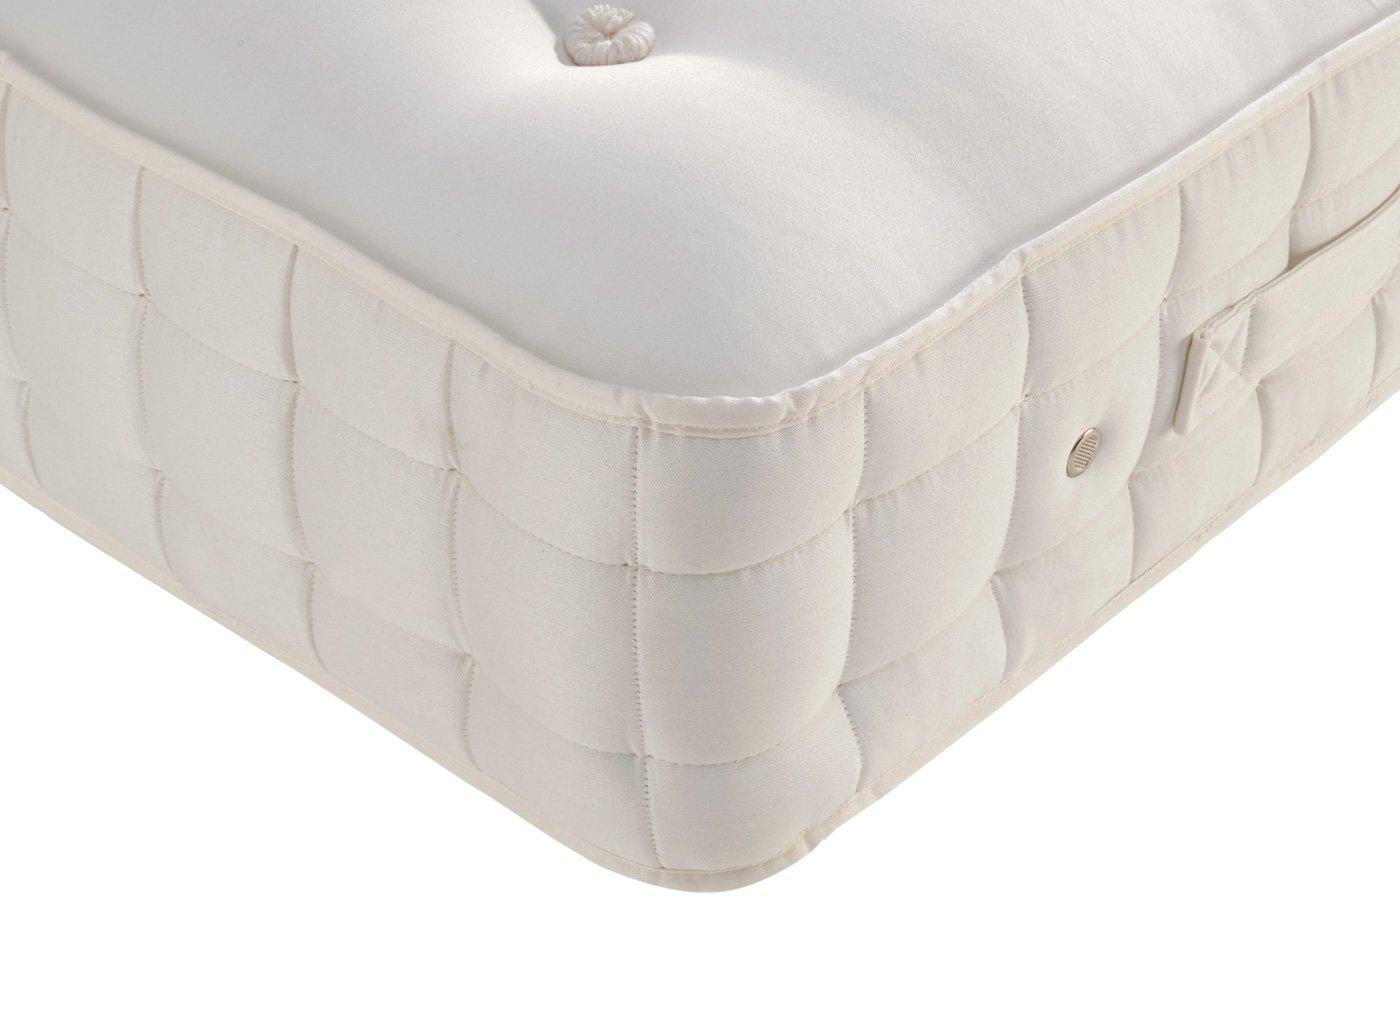 Hypnos Cohan Mattress 5'0 King